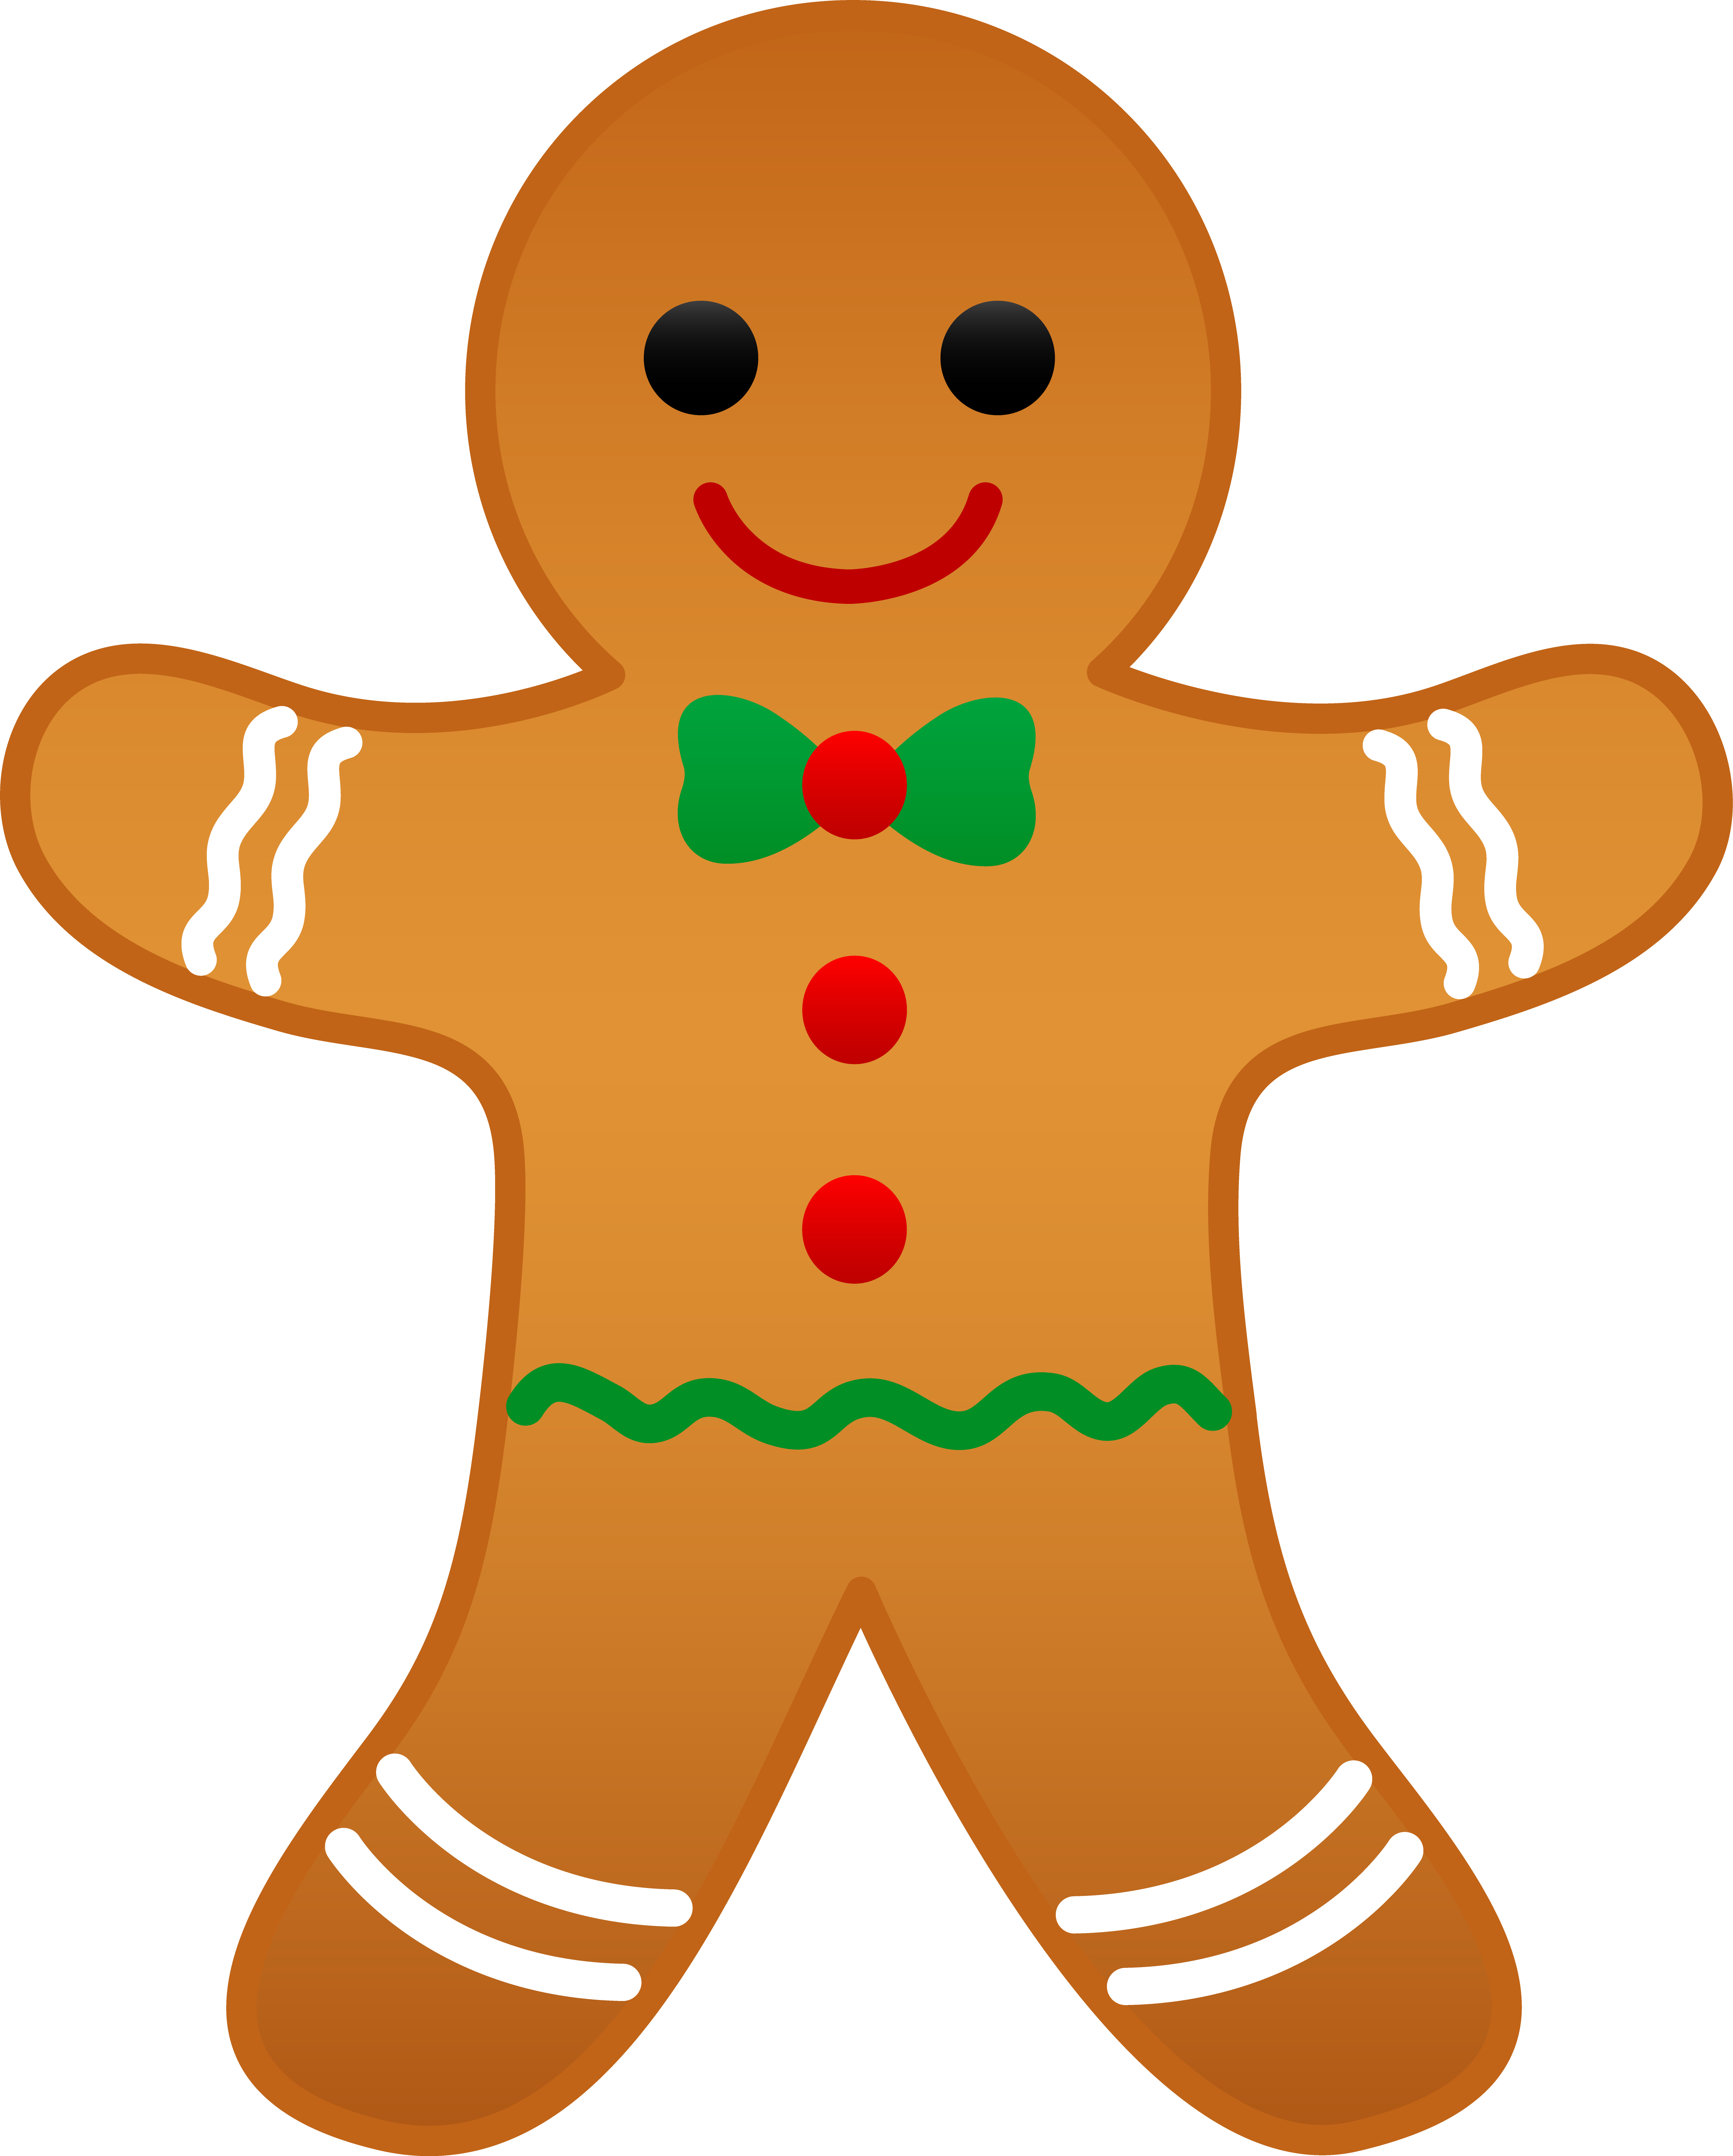 png royalty free download Gingerbread clipart. Drawing at getdrawings com.